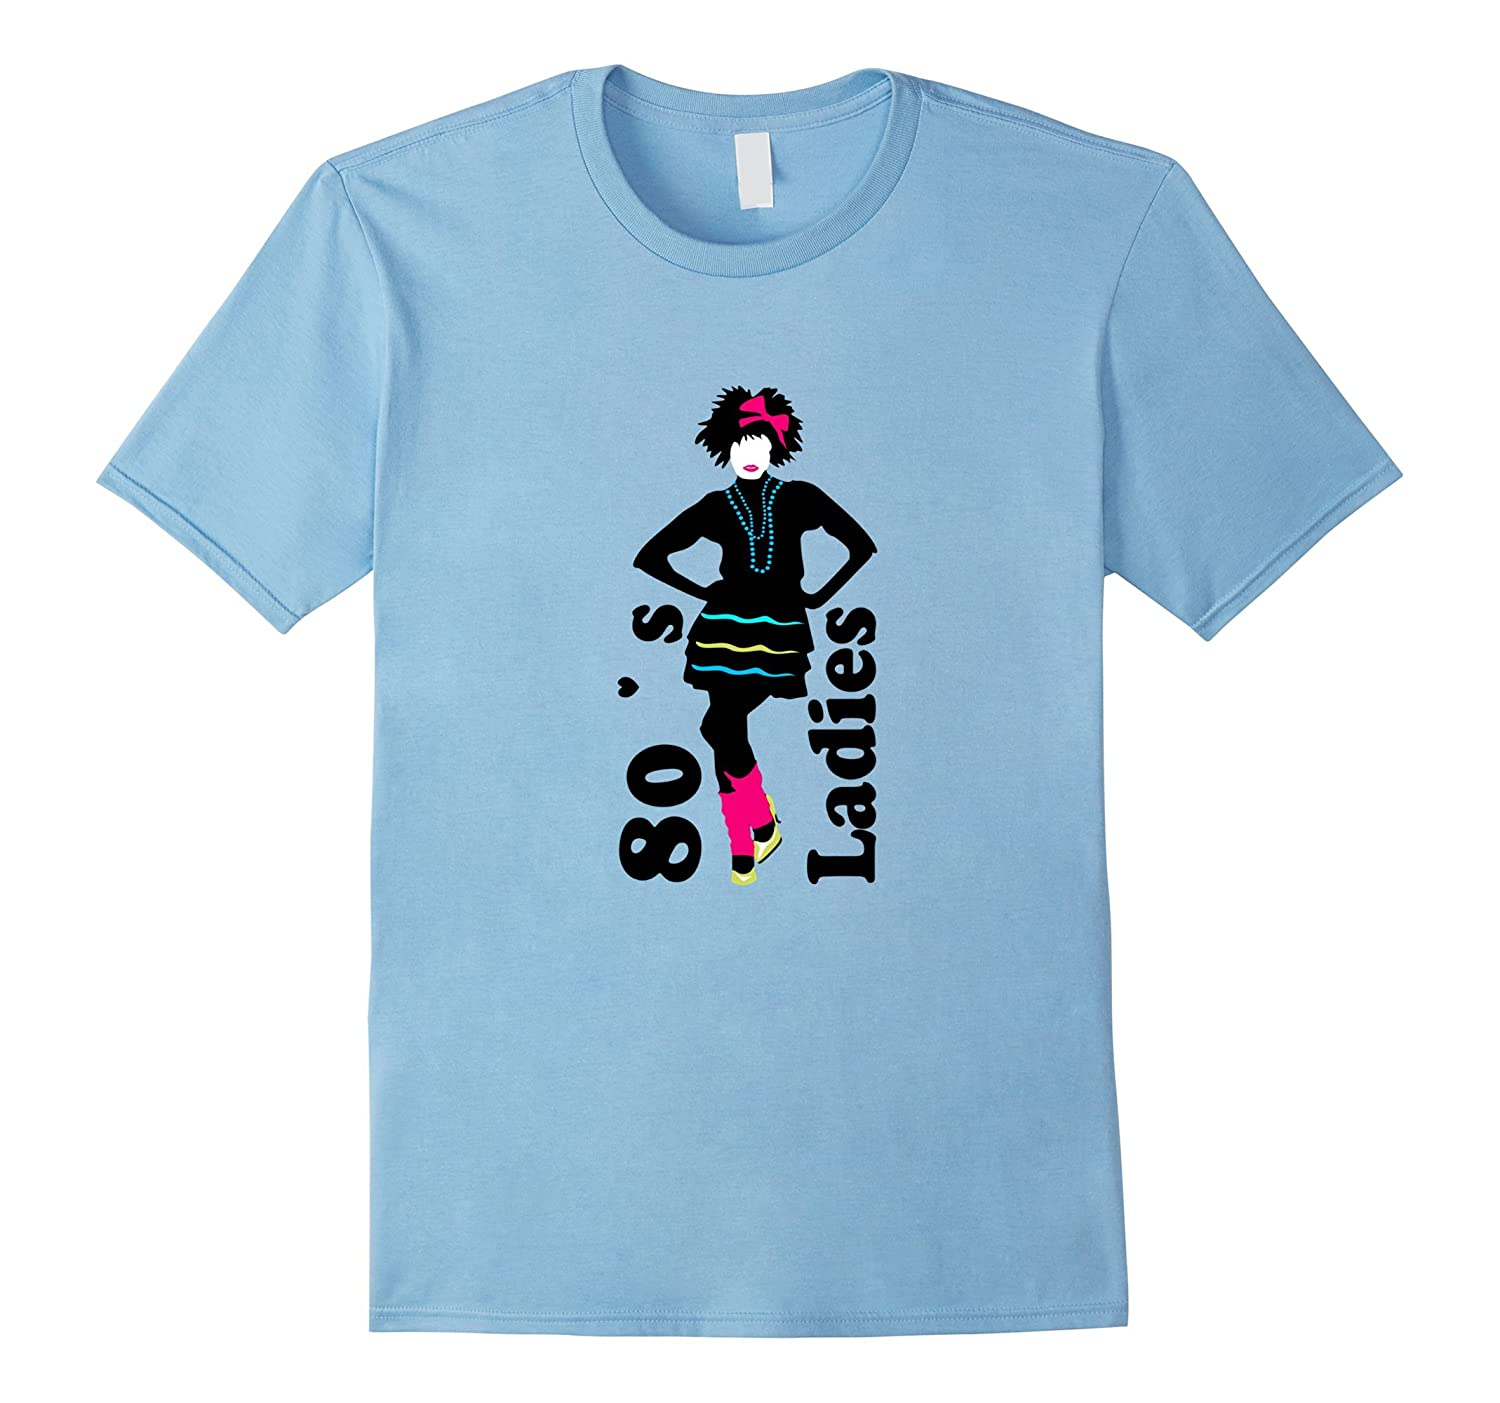 80s ladies t shirt 1980s retro womens clothing apparel